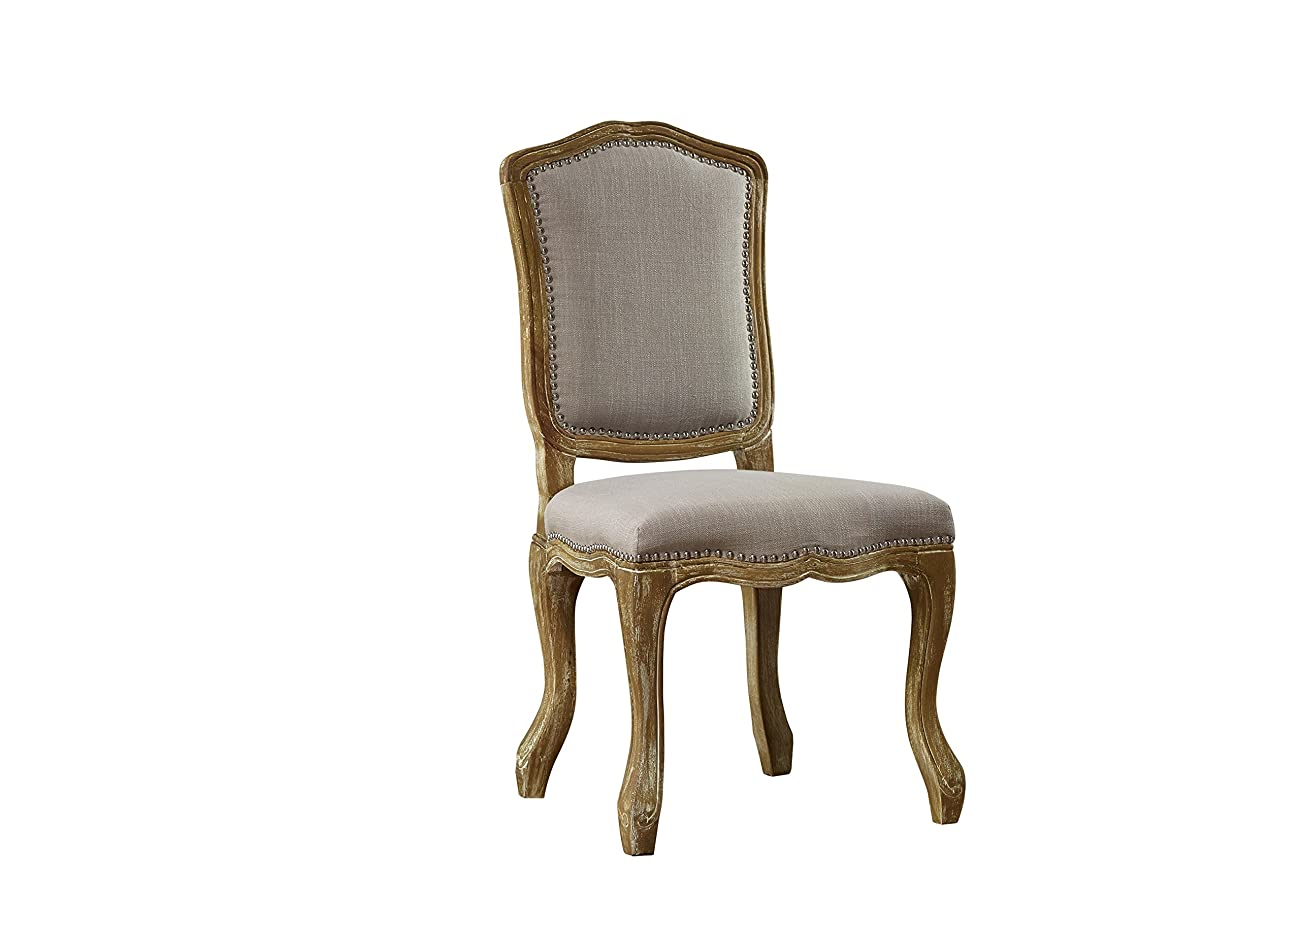 Baxton Studio Chateauneuf French Vintage Cottage Weathered Oak Linen Upholstered Dining Side Chair, Medium, Beige 0